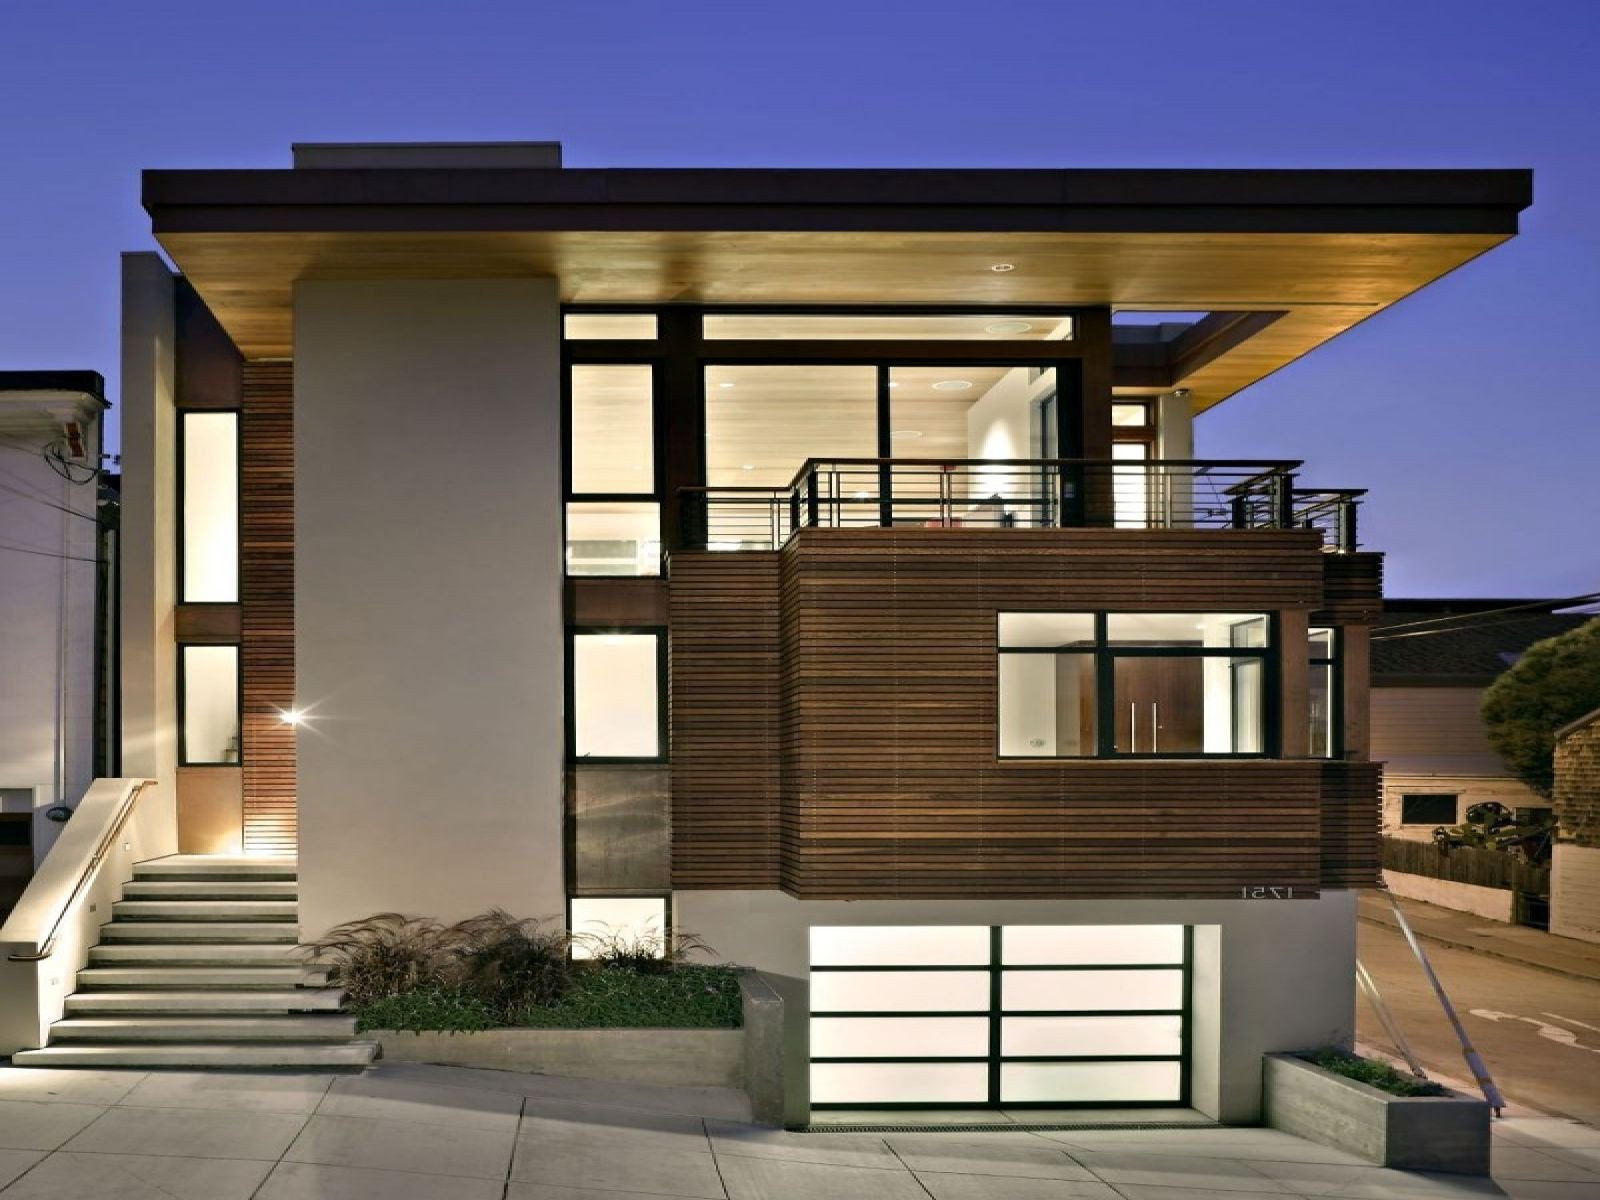 Tips to design your home like a minimalist